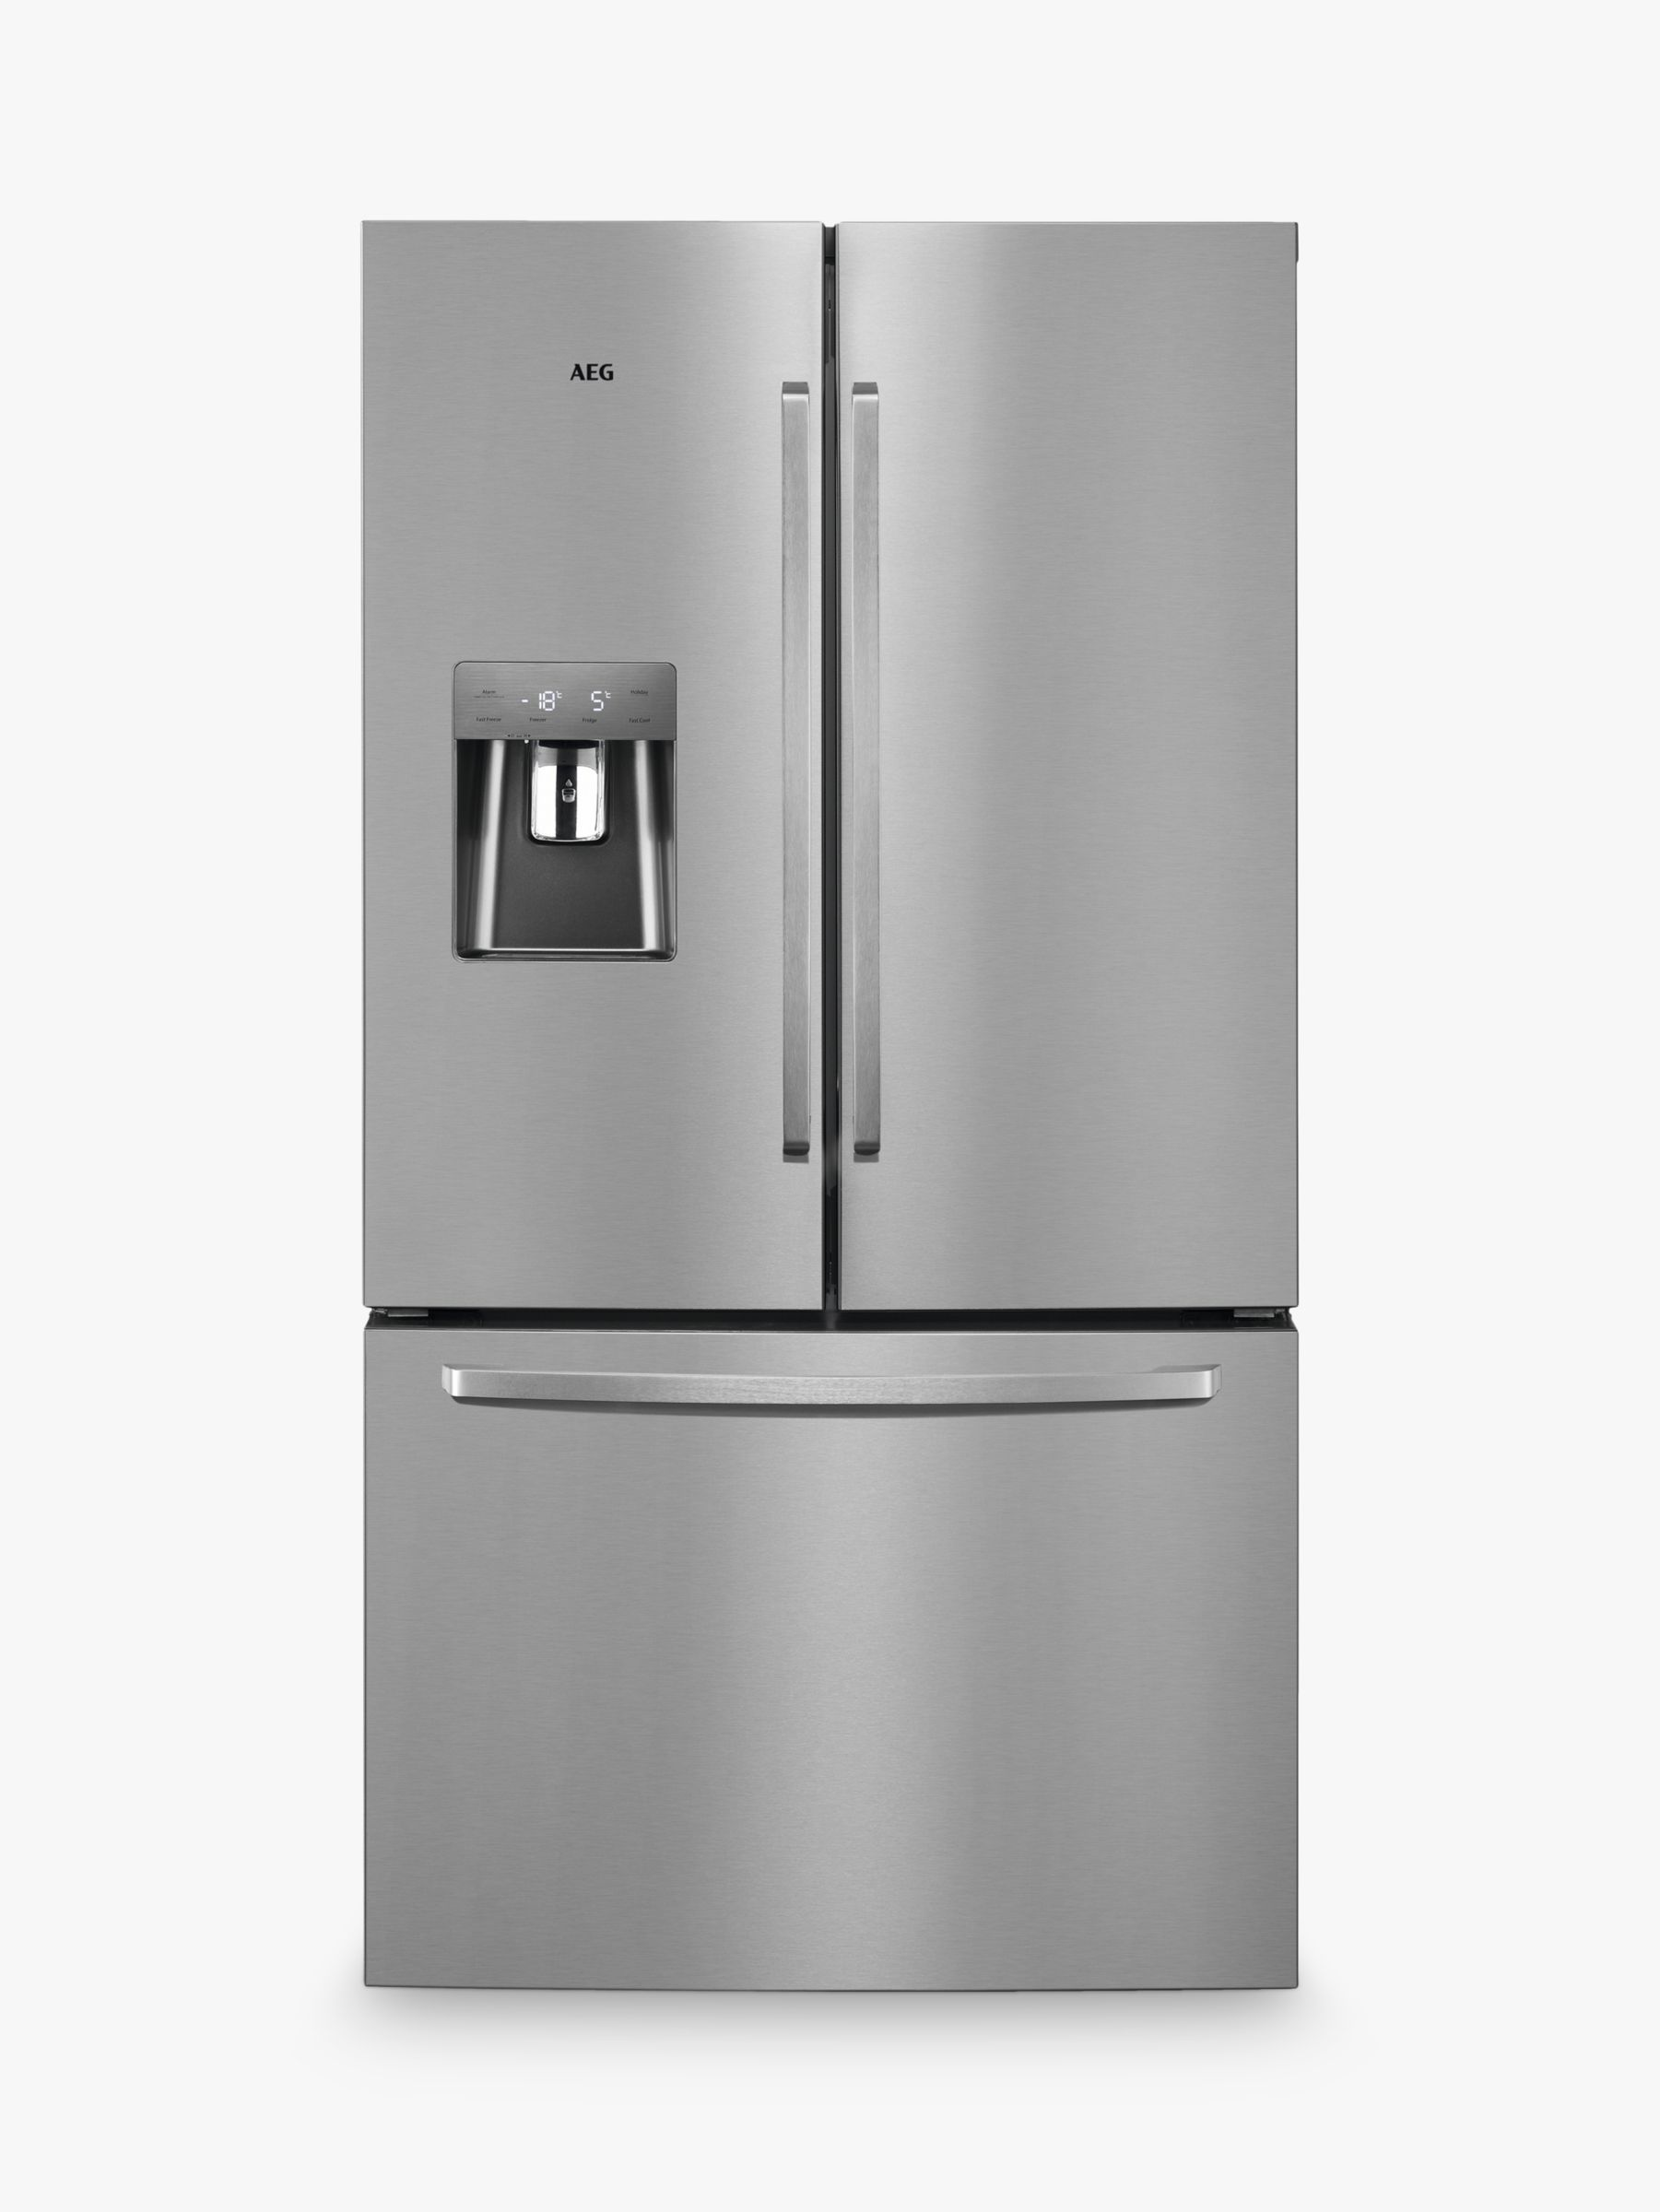 AEG AEG RMB76311NX American Style Fridge Freezer, A+ Energy Rating, 91.2cm Wide, Stainless Steel